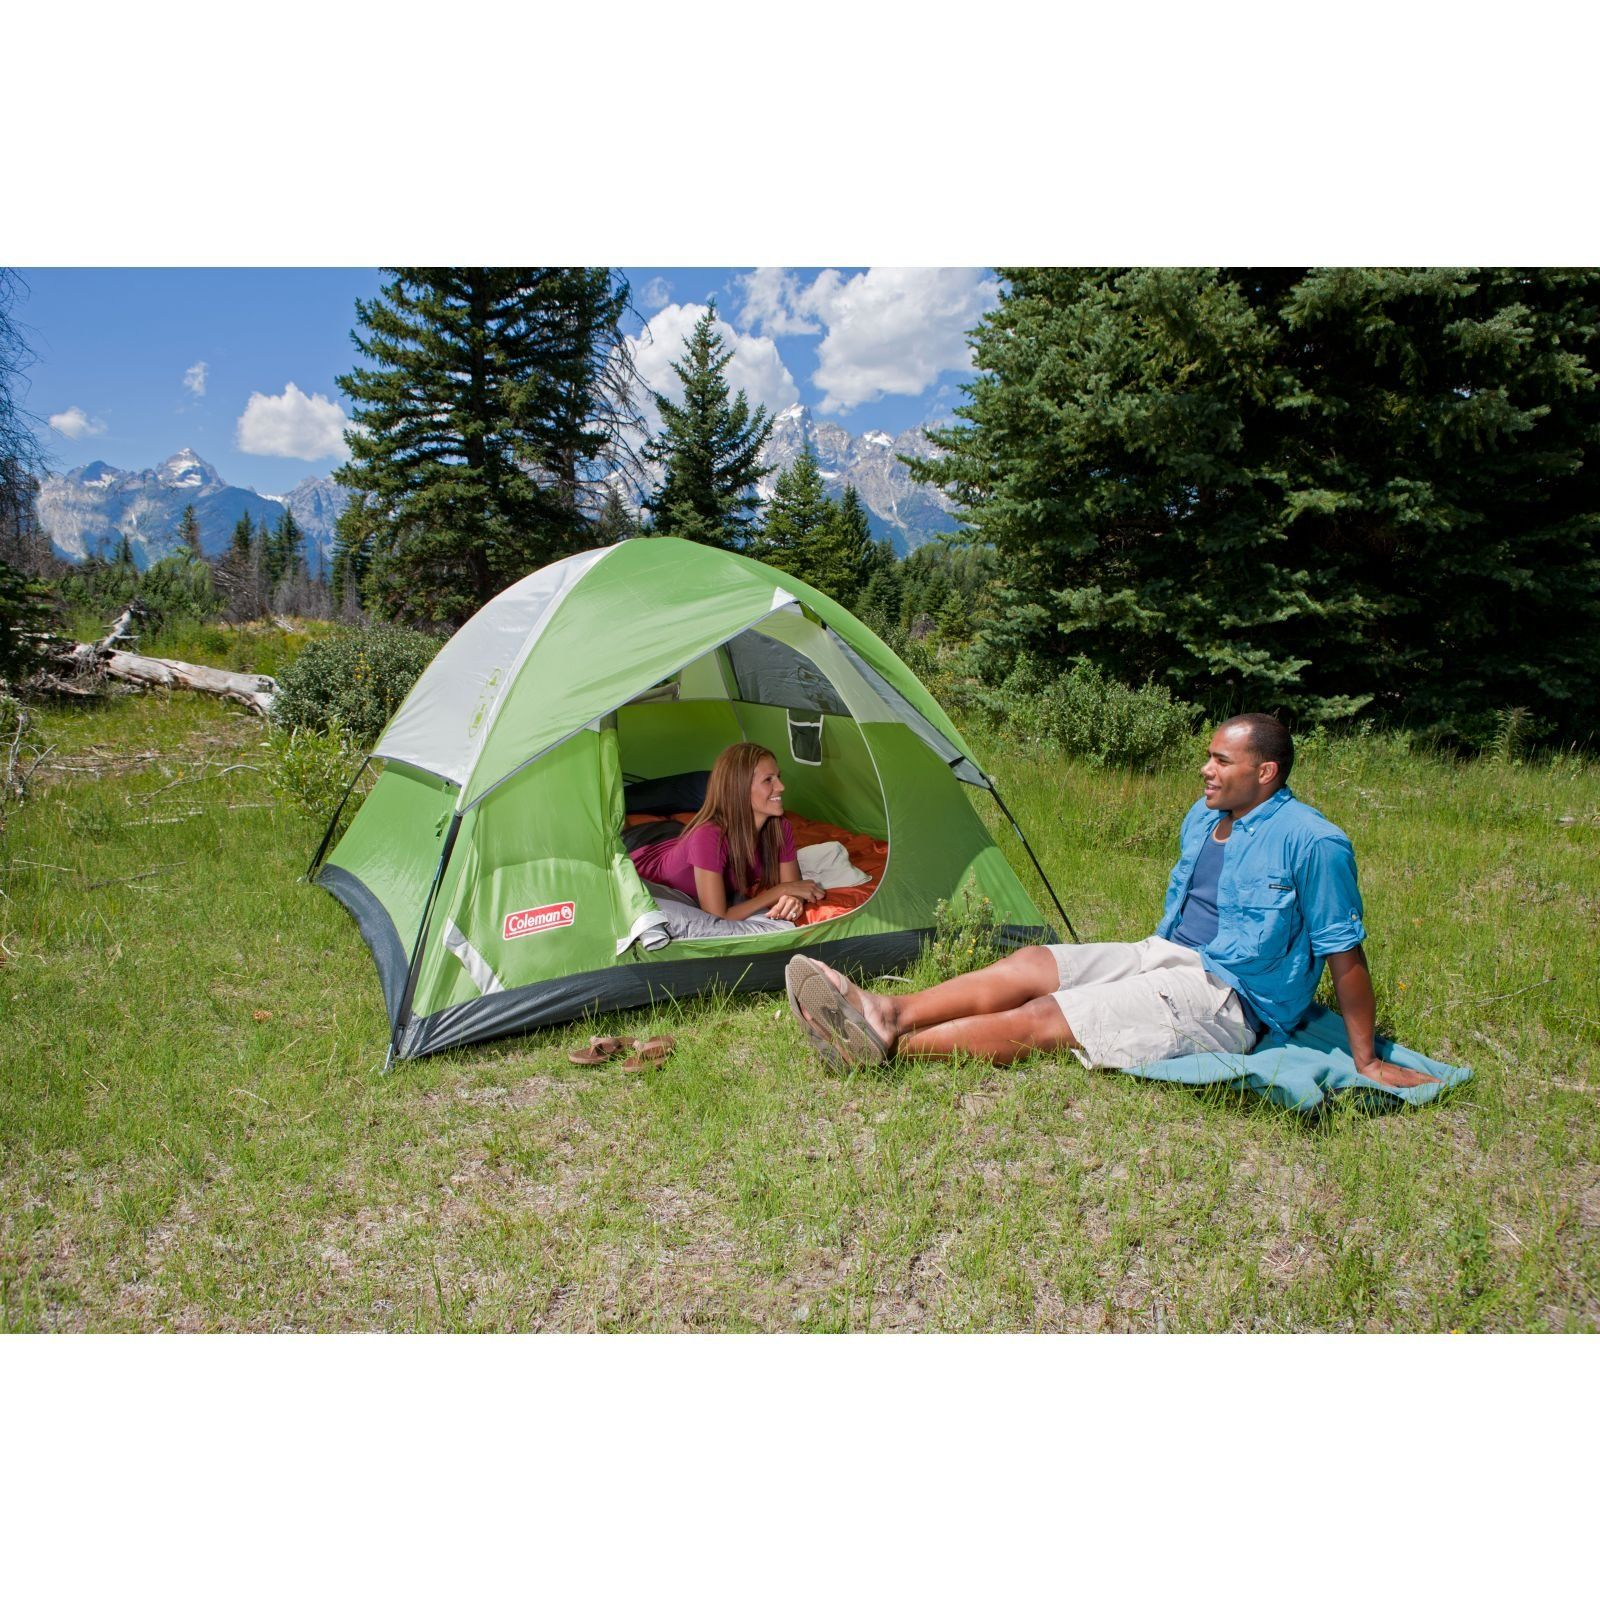 Amazon.com  Coleman Sundome Tent  Sports u0026 Outdoors  sc 1 st  Pinterest & Amazon.com : Coleman Sundome Tent : Sports u0026 Outdoors | camping ...